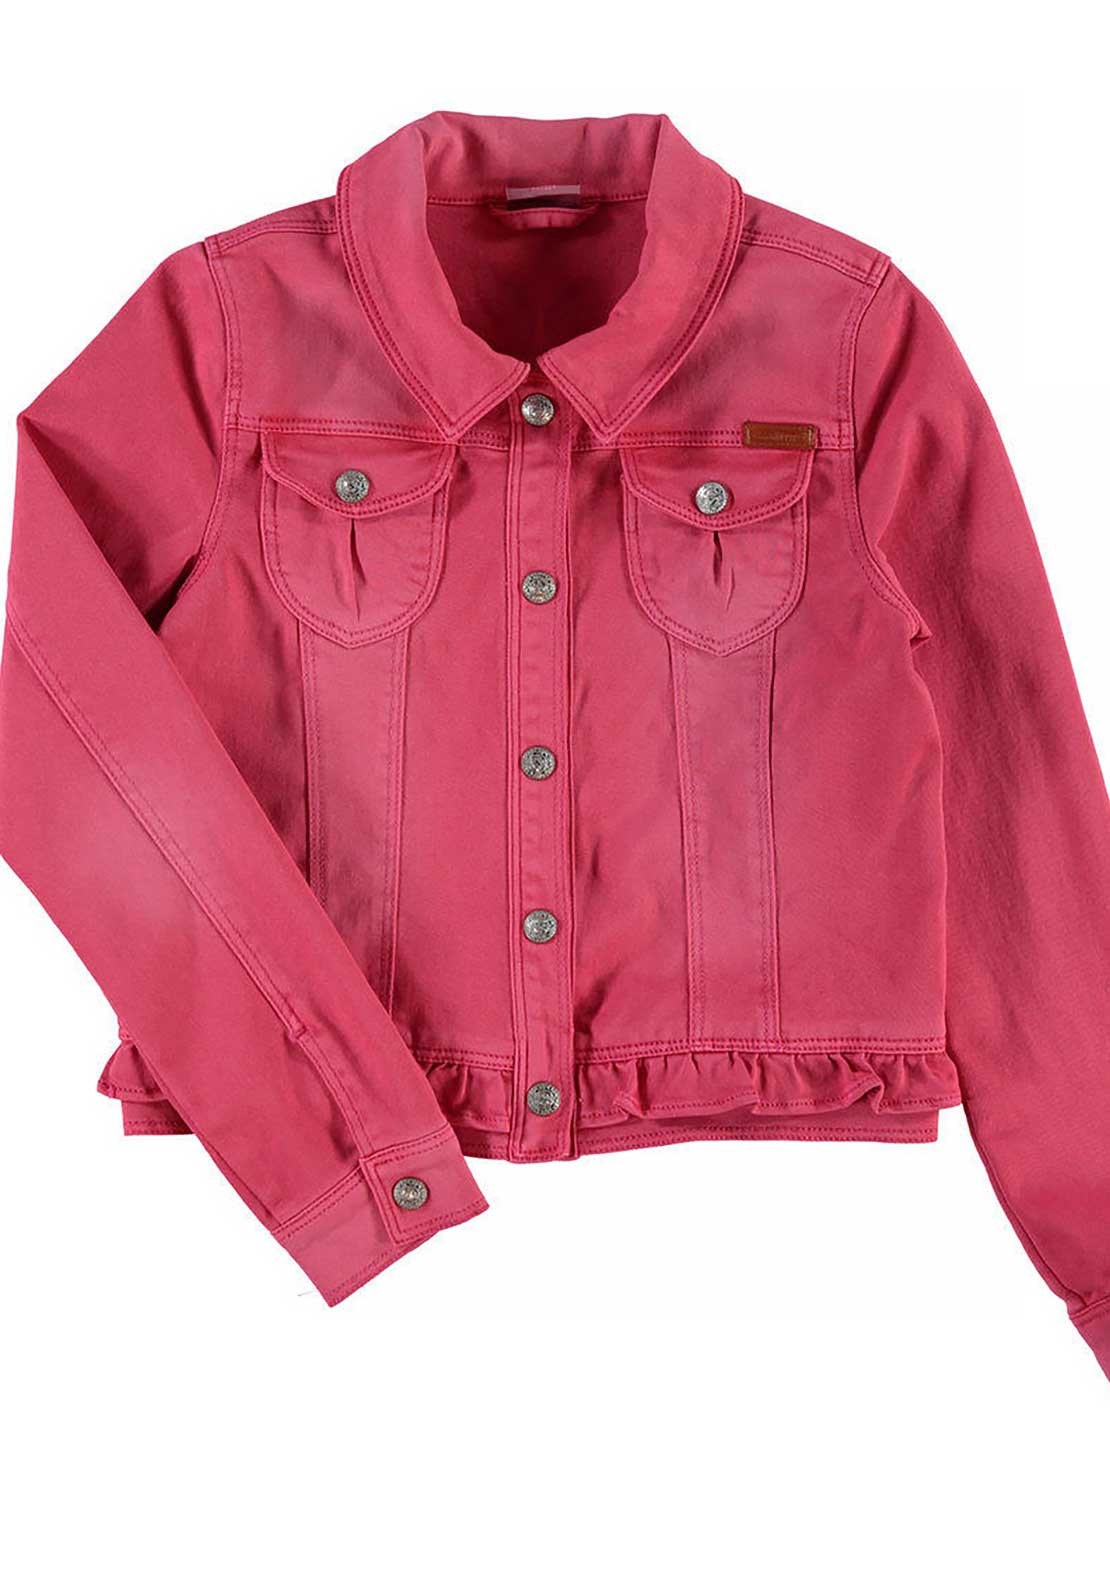 Name It Girls Frilled Panel Denim Jacket, Pink